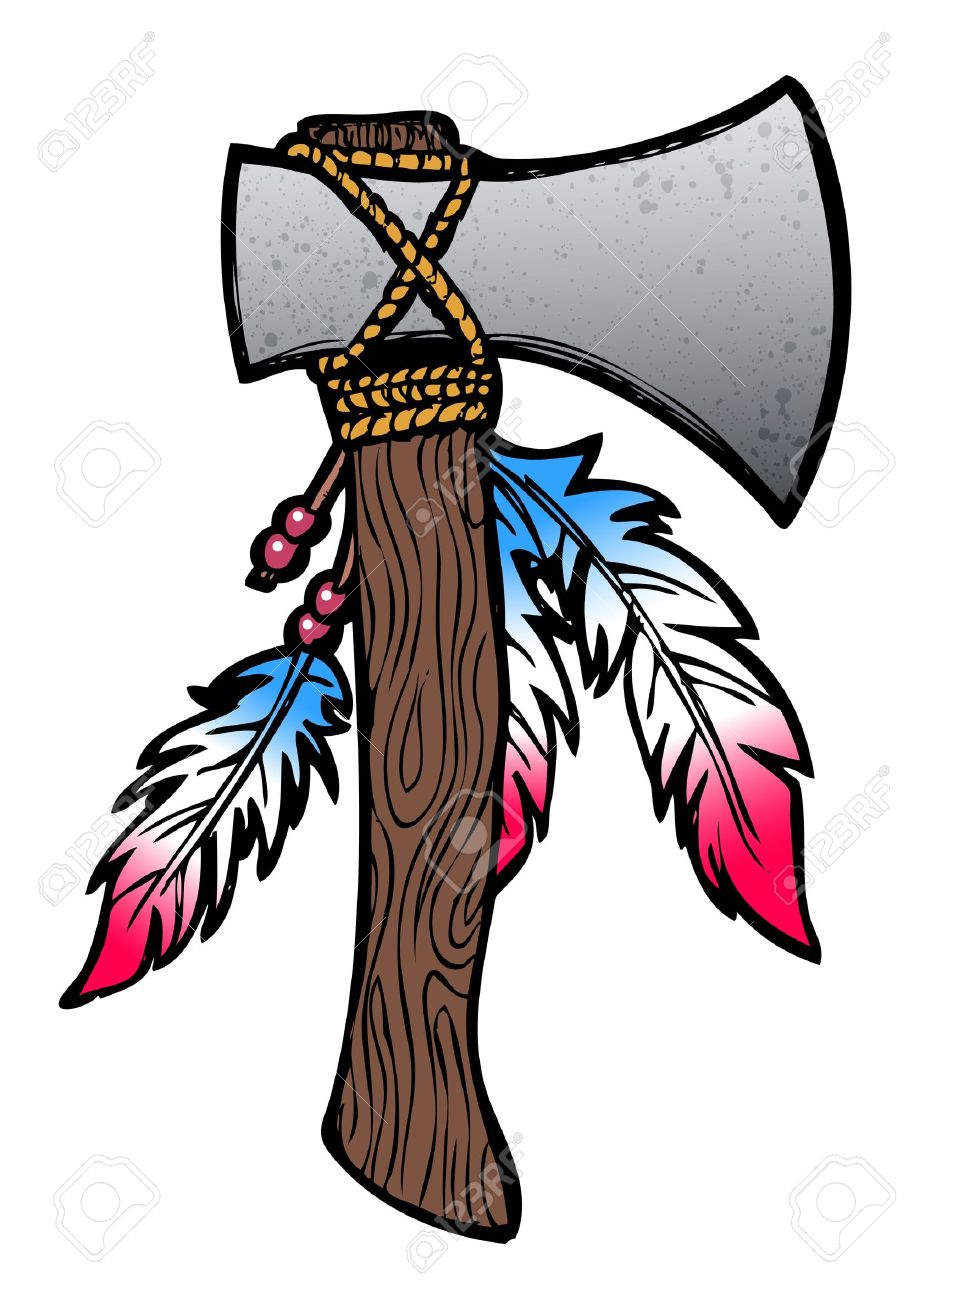 975x1300 Hatchet Axe Drawing With Feathers And Beads Royalty Free Cliparts